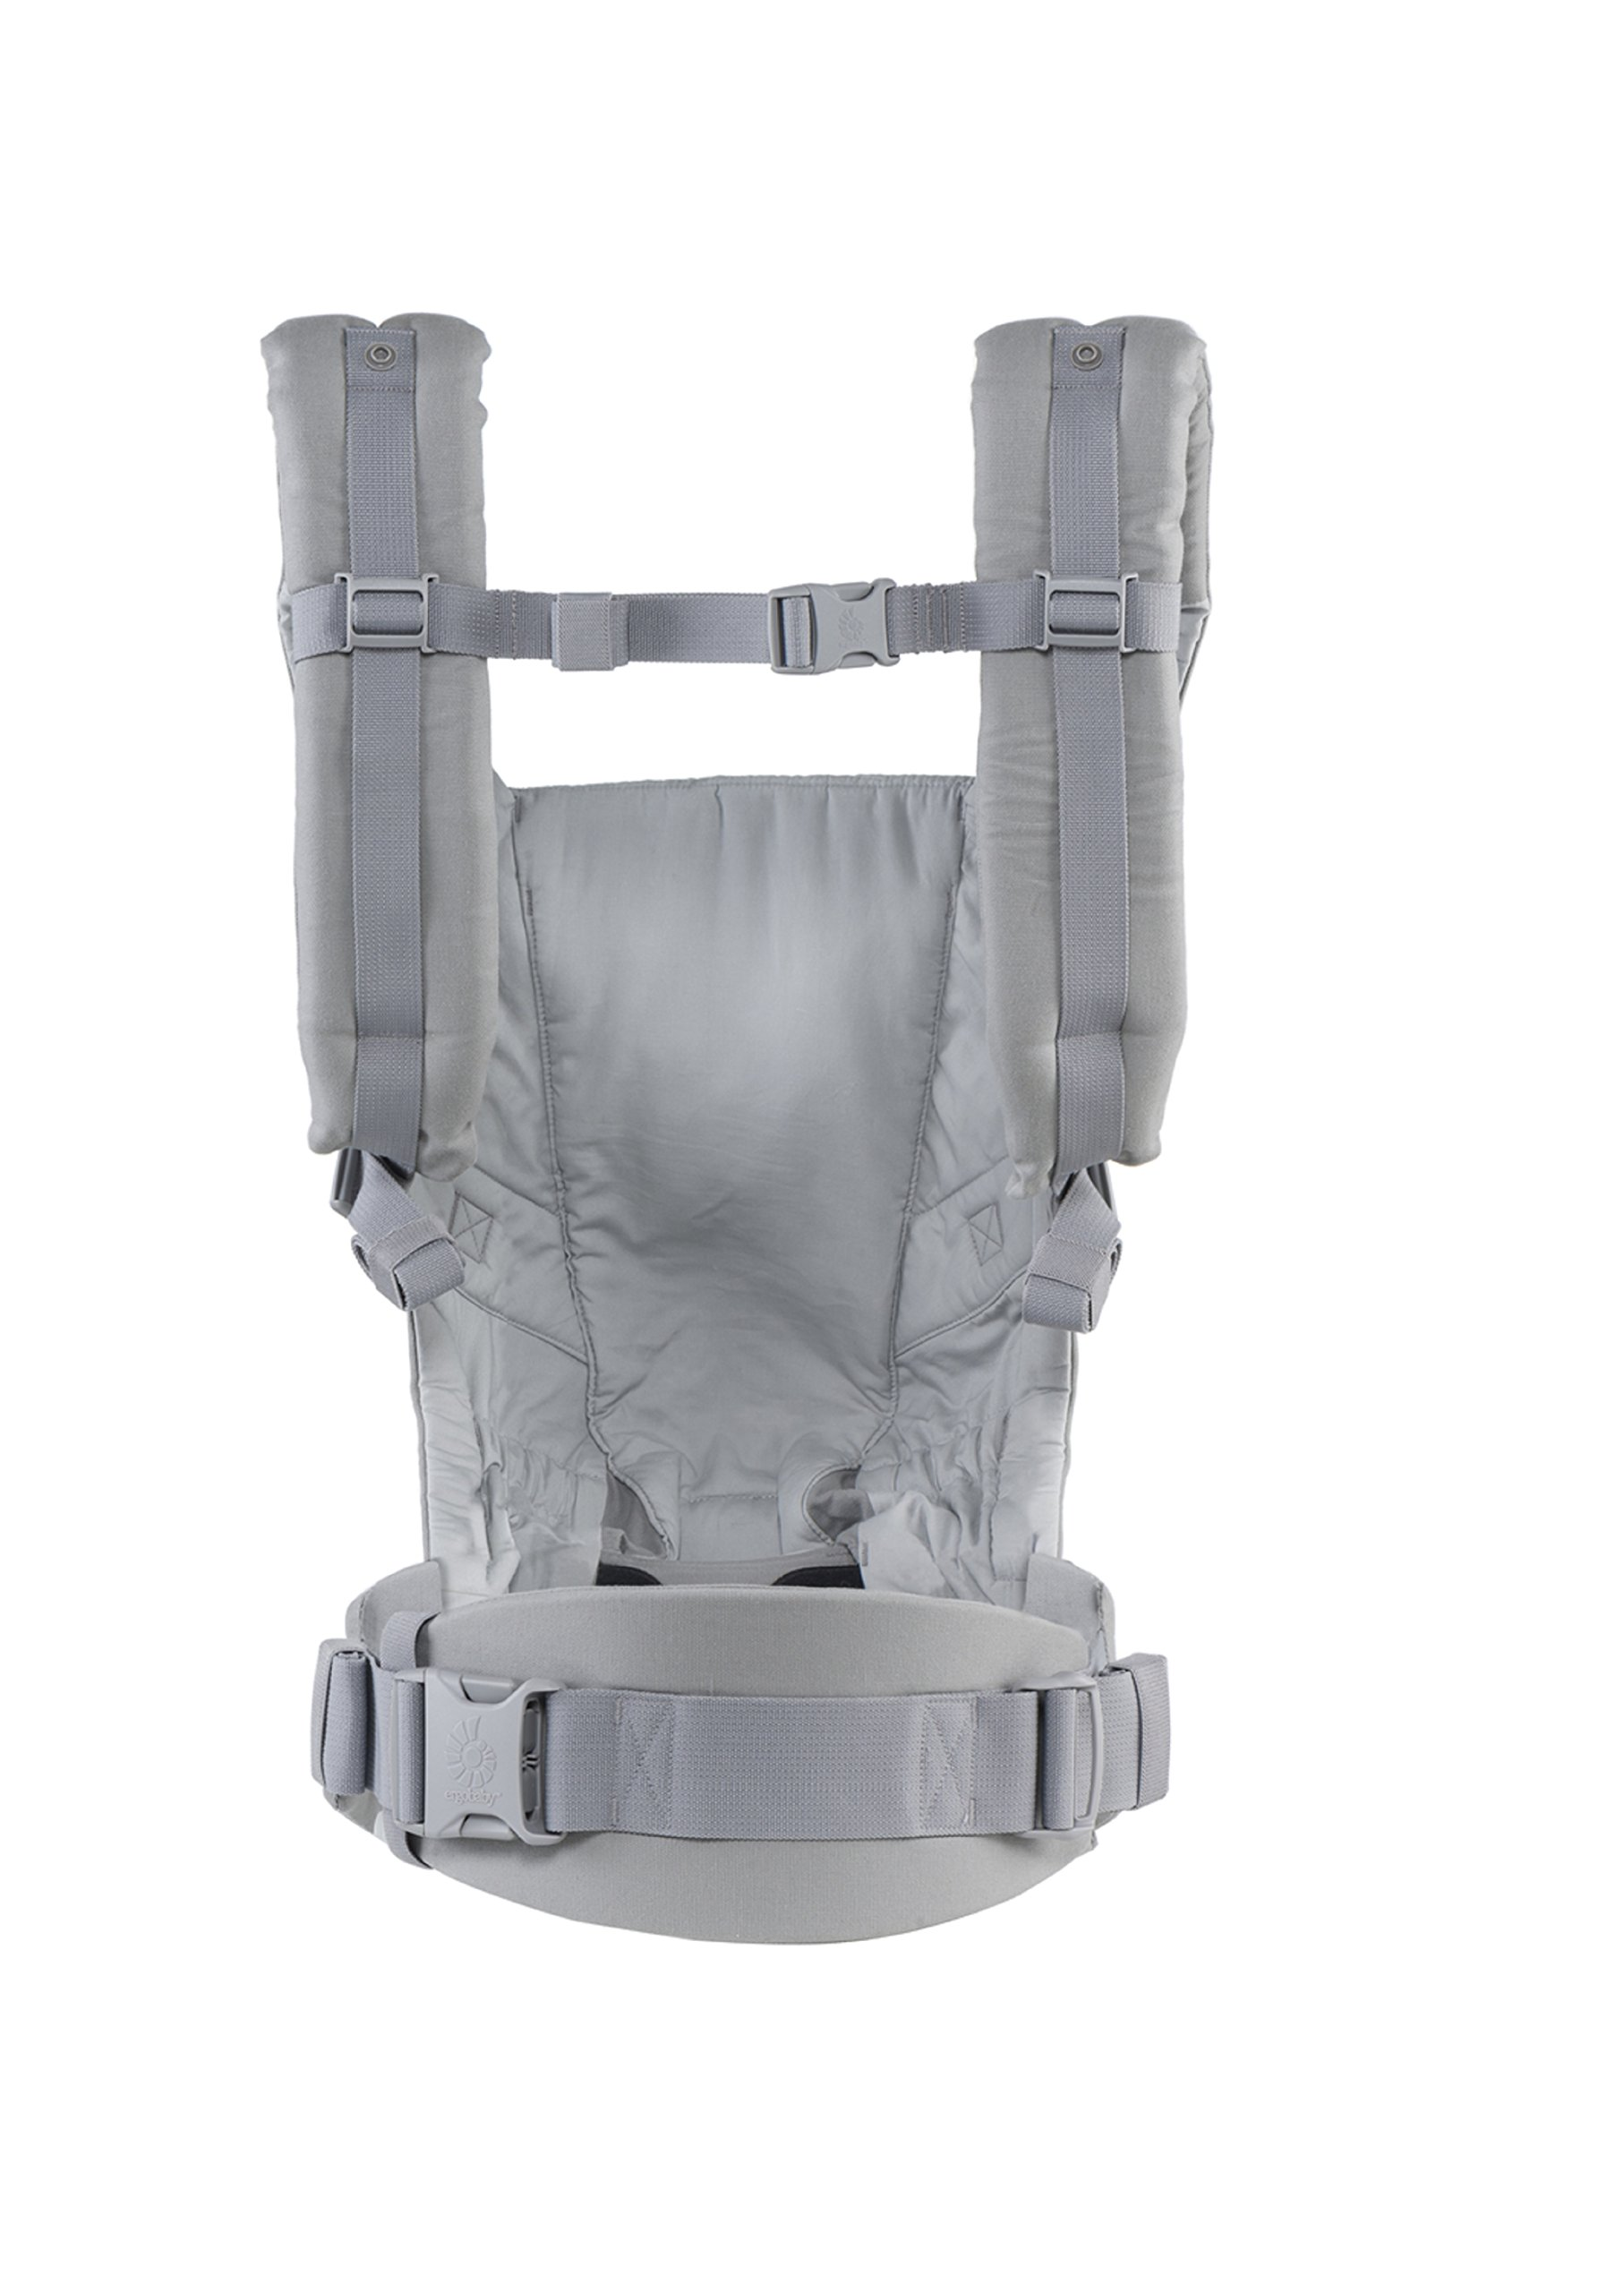 ErgoBaby Adapt Baby Carrier Grey Ergobaby Adapt to Every Baby Easy. Adjustable. Newborn to toddler. 3